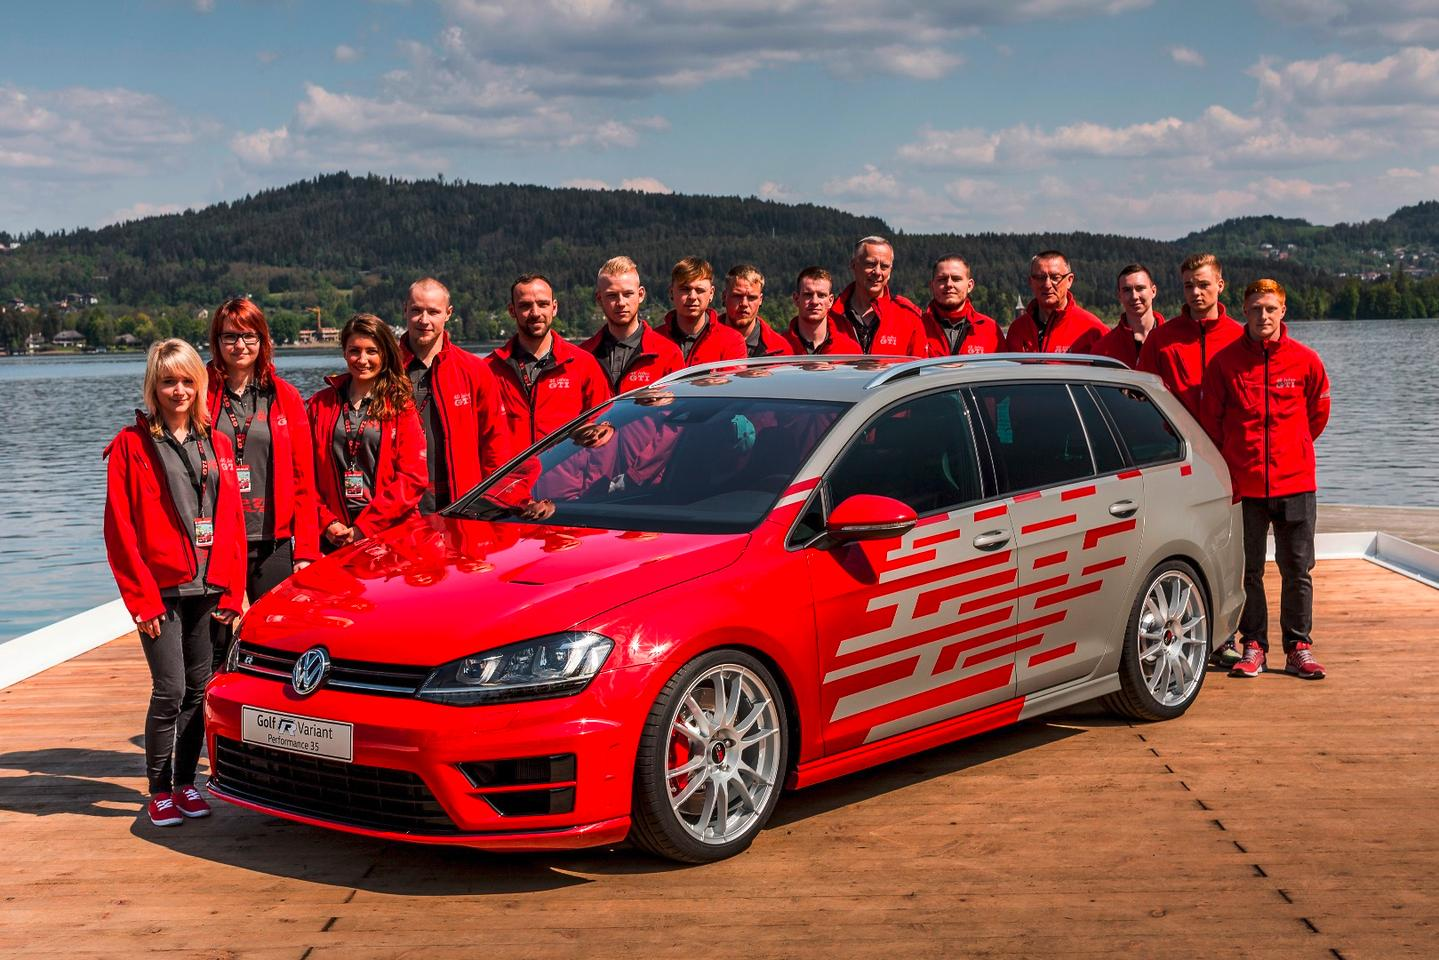 The Golf R Variant Performance 35 and the engineering team behind it